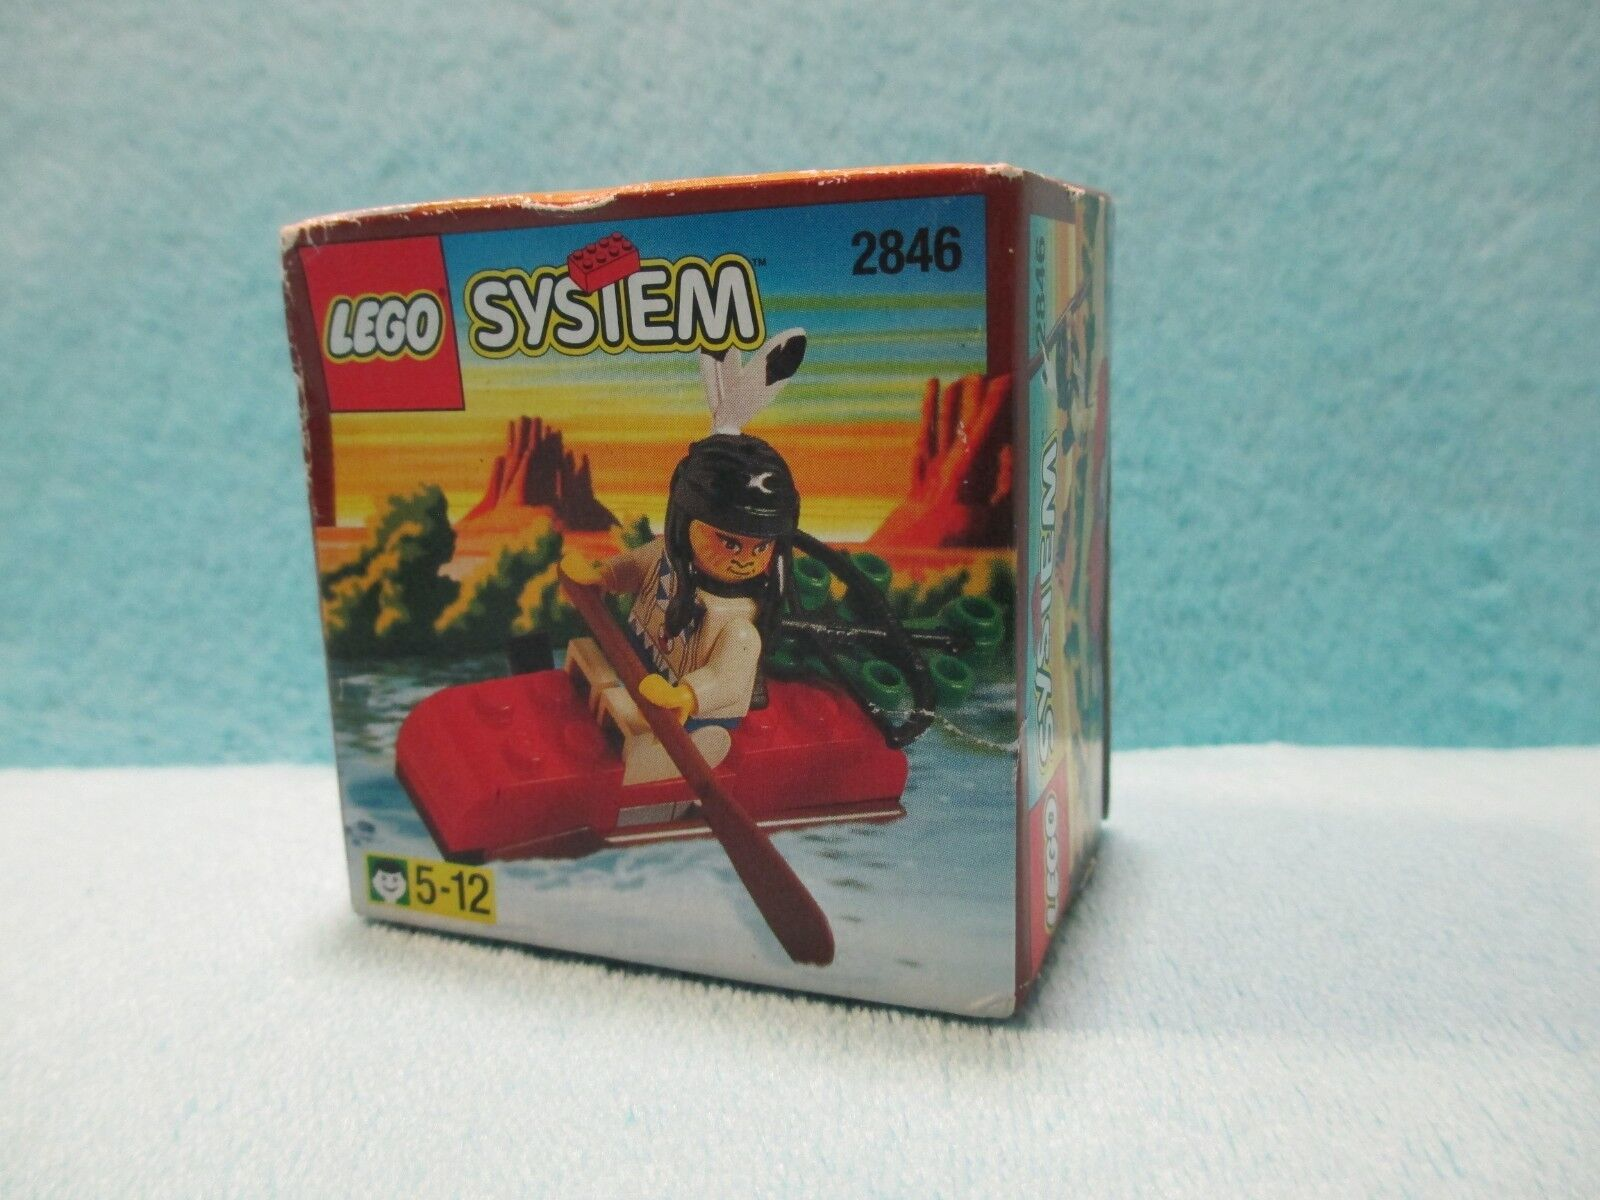 NEW & SEALED LEGO System Set 2846 Western Indian Kayak - XMAS GIFT UNOPENED